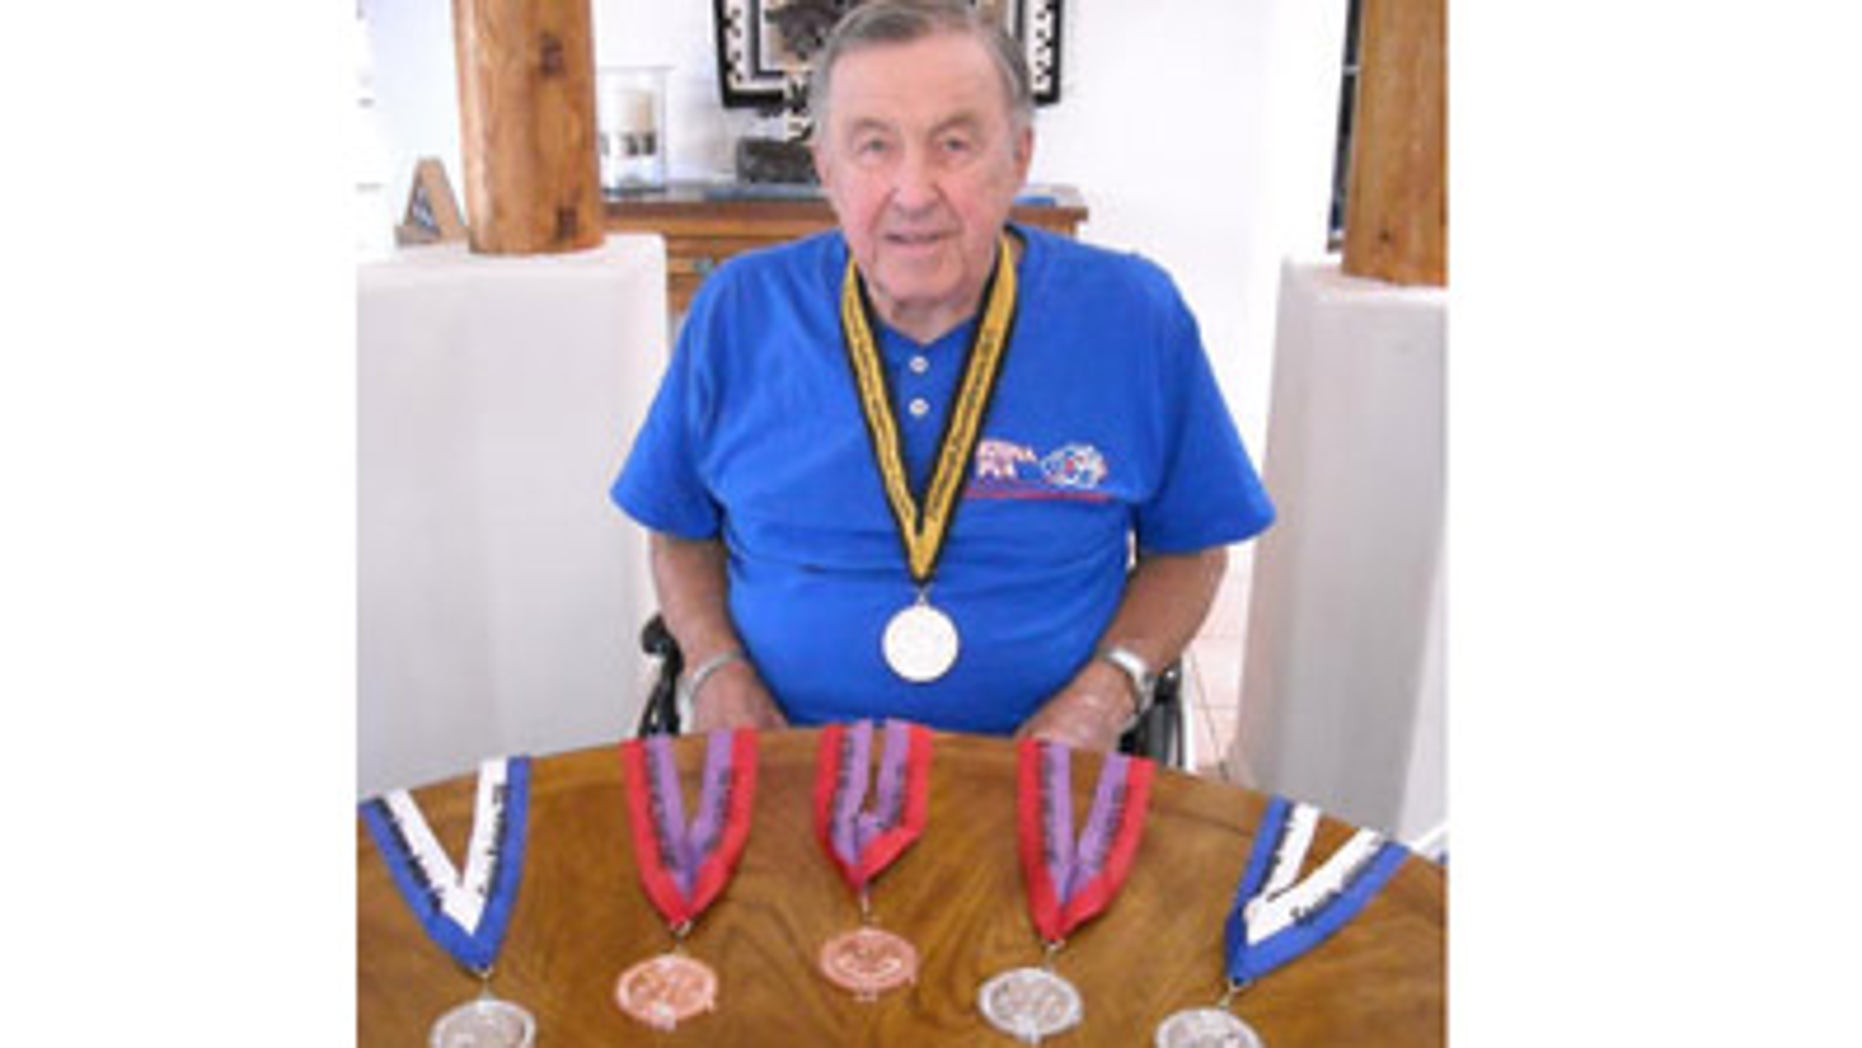 In this Sept. 16, 2011 photo, Theron Hallock sits with his medals in his Green Valley, Ariz., home. Hallock hasnt walked in 10 years but that hasnt stopped him from becoming a national-level athlete. Hallock, who turns 84 soon, recently returned from the 31st Annual National Veterans Wheelchair Games in Pittsburgh, where he took a bronze medal for the power chair relay race.